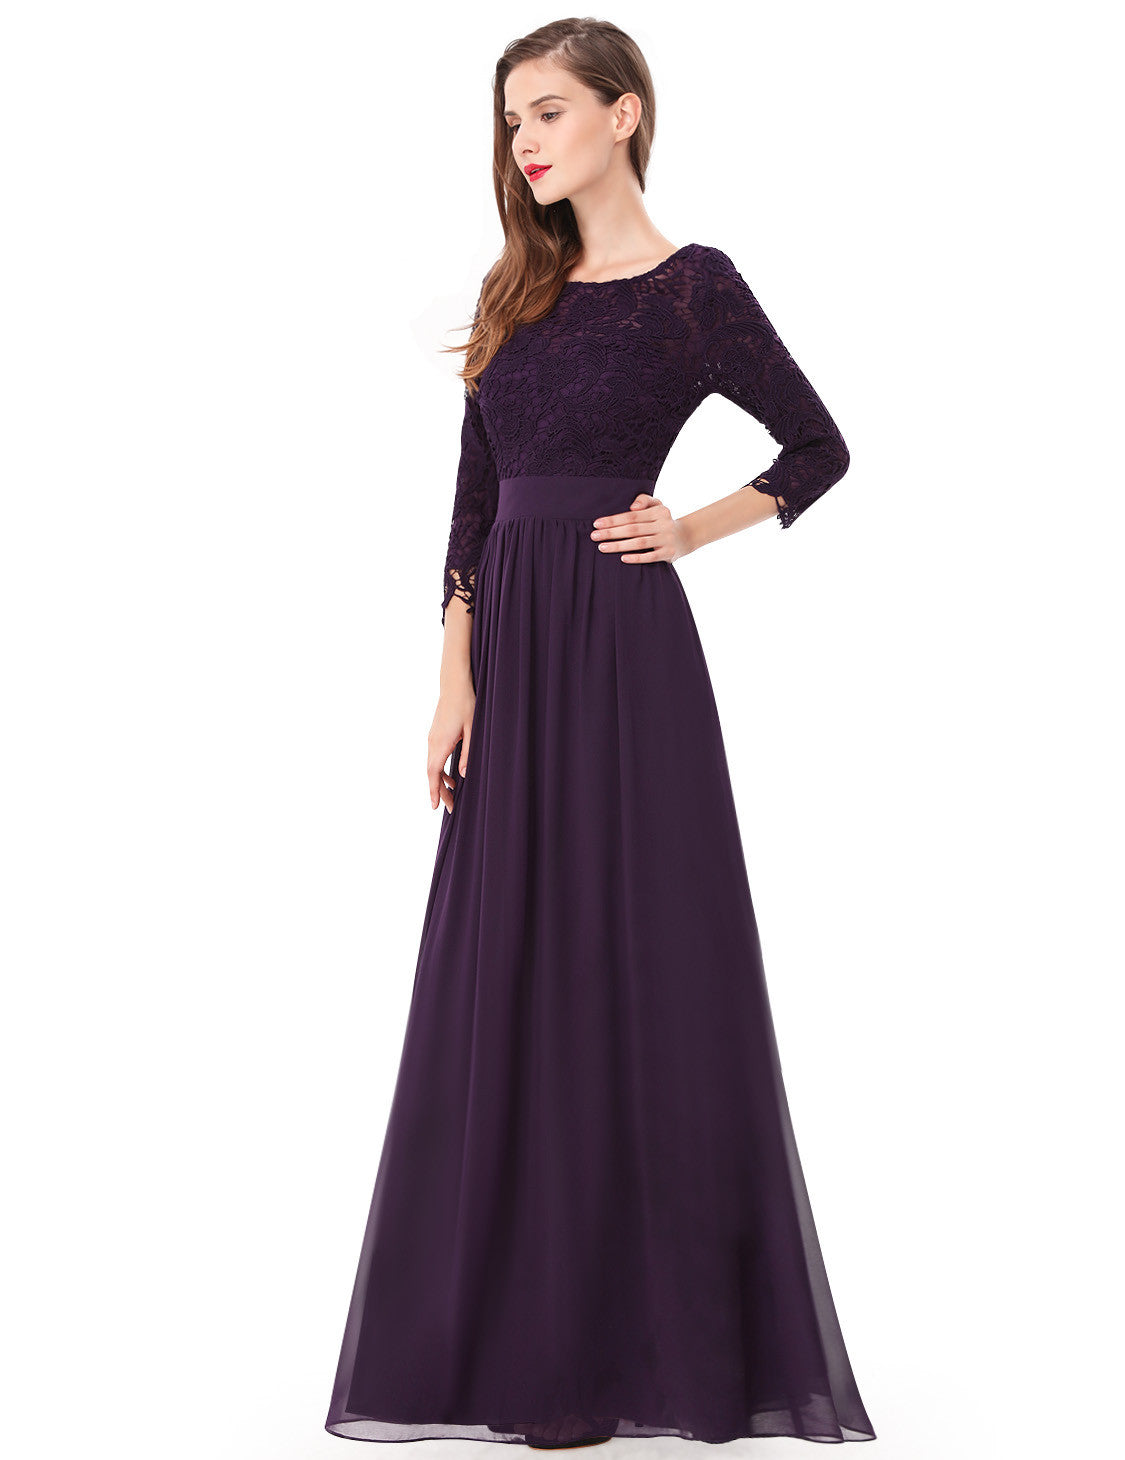 Obeige Elegant Purple 3/4 Sleeve Lace Long Evening Dress - O'beige